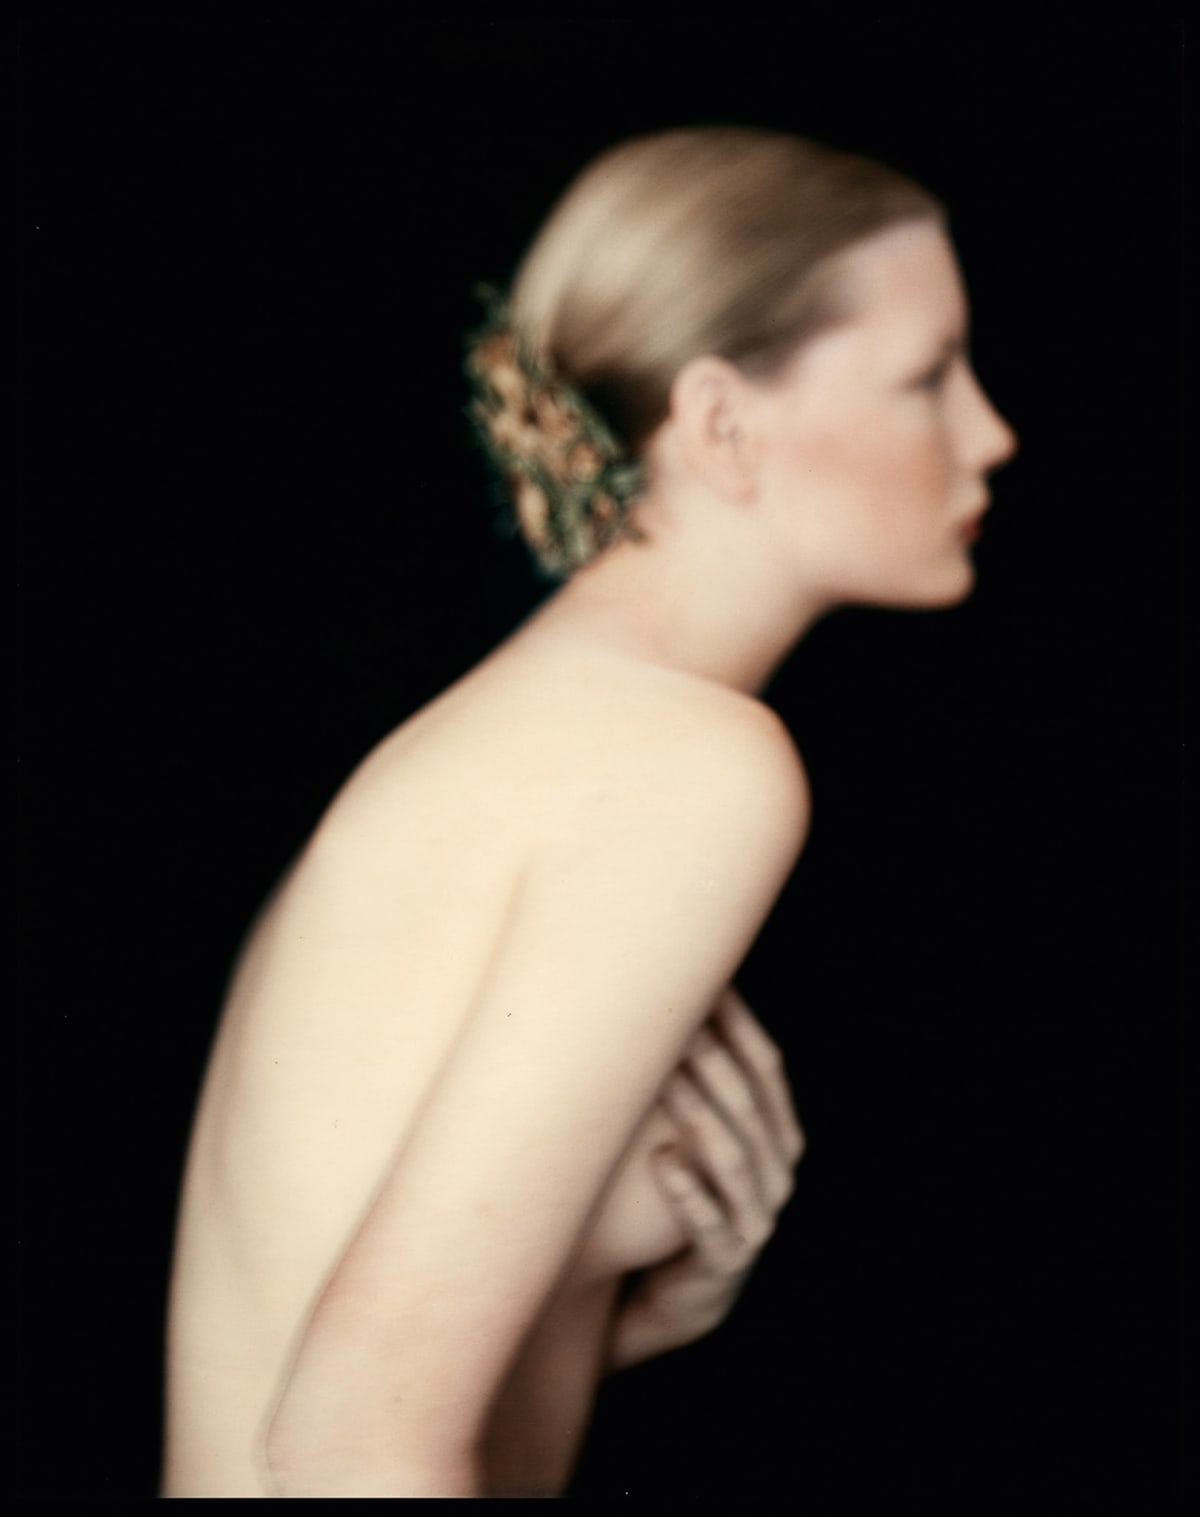 Paolo Roversi, Kirsten, London, 1988